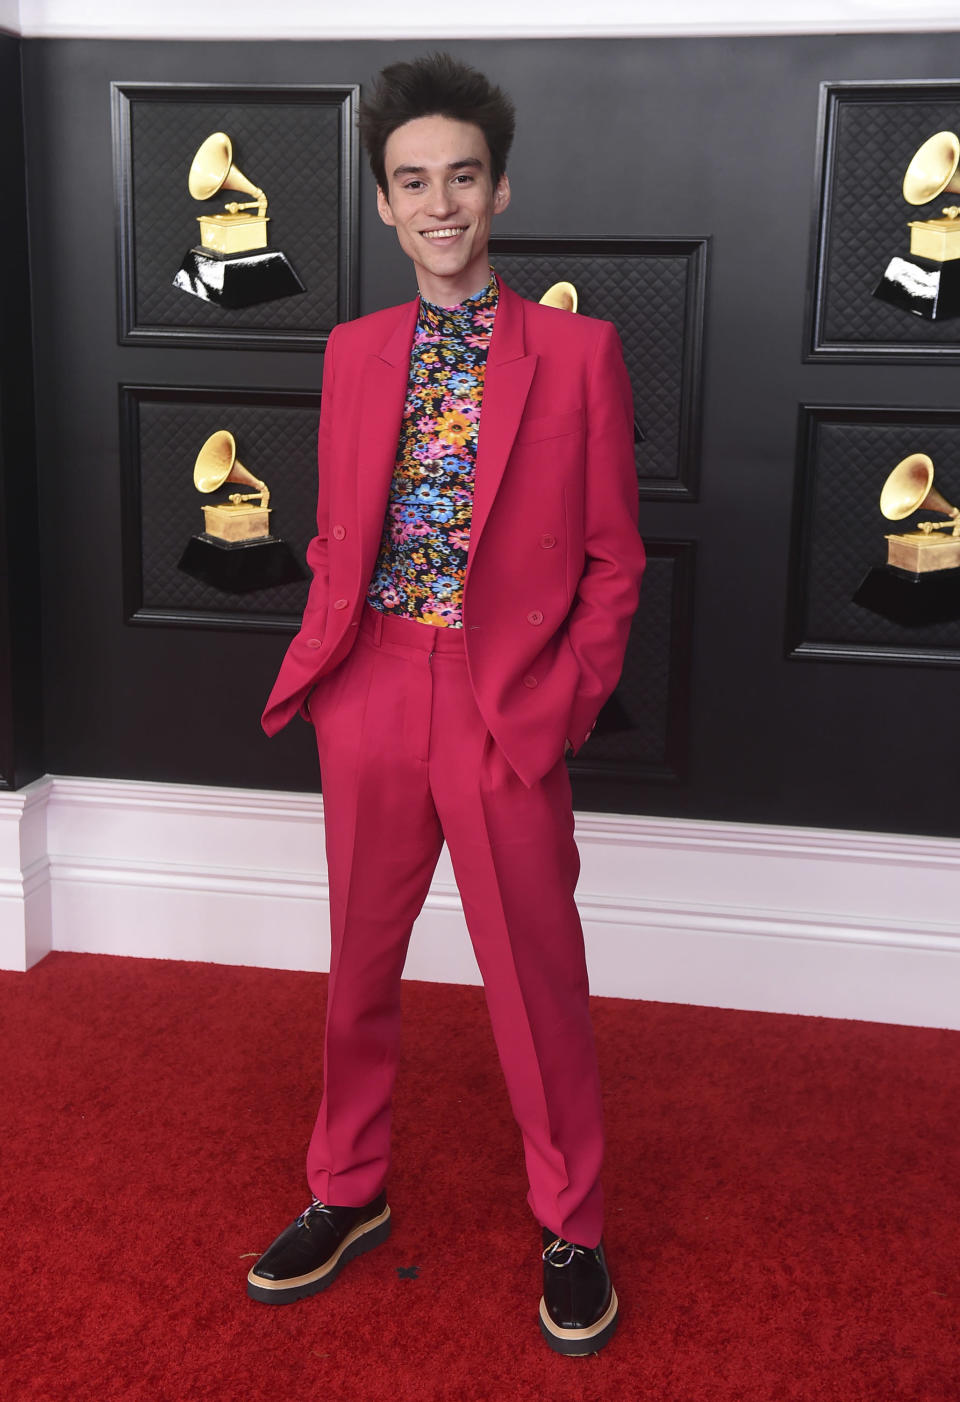 Jacob Collier arrives at the 63rd annual Grammy Awards at the Los Angeles Convention Center on Sunday, March 14, 2021. (Photo by Jordan Strauss/Invision/AP)